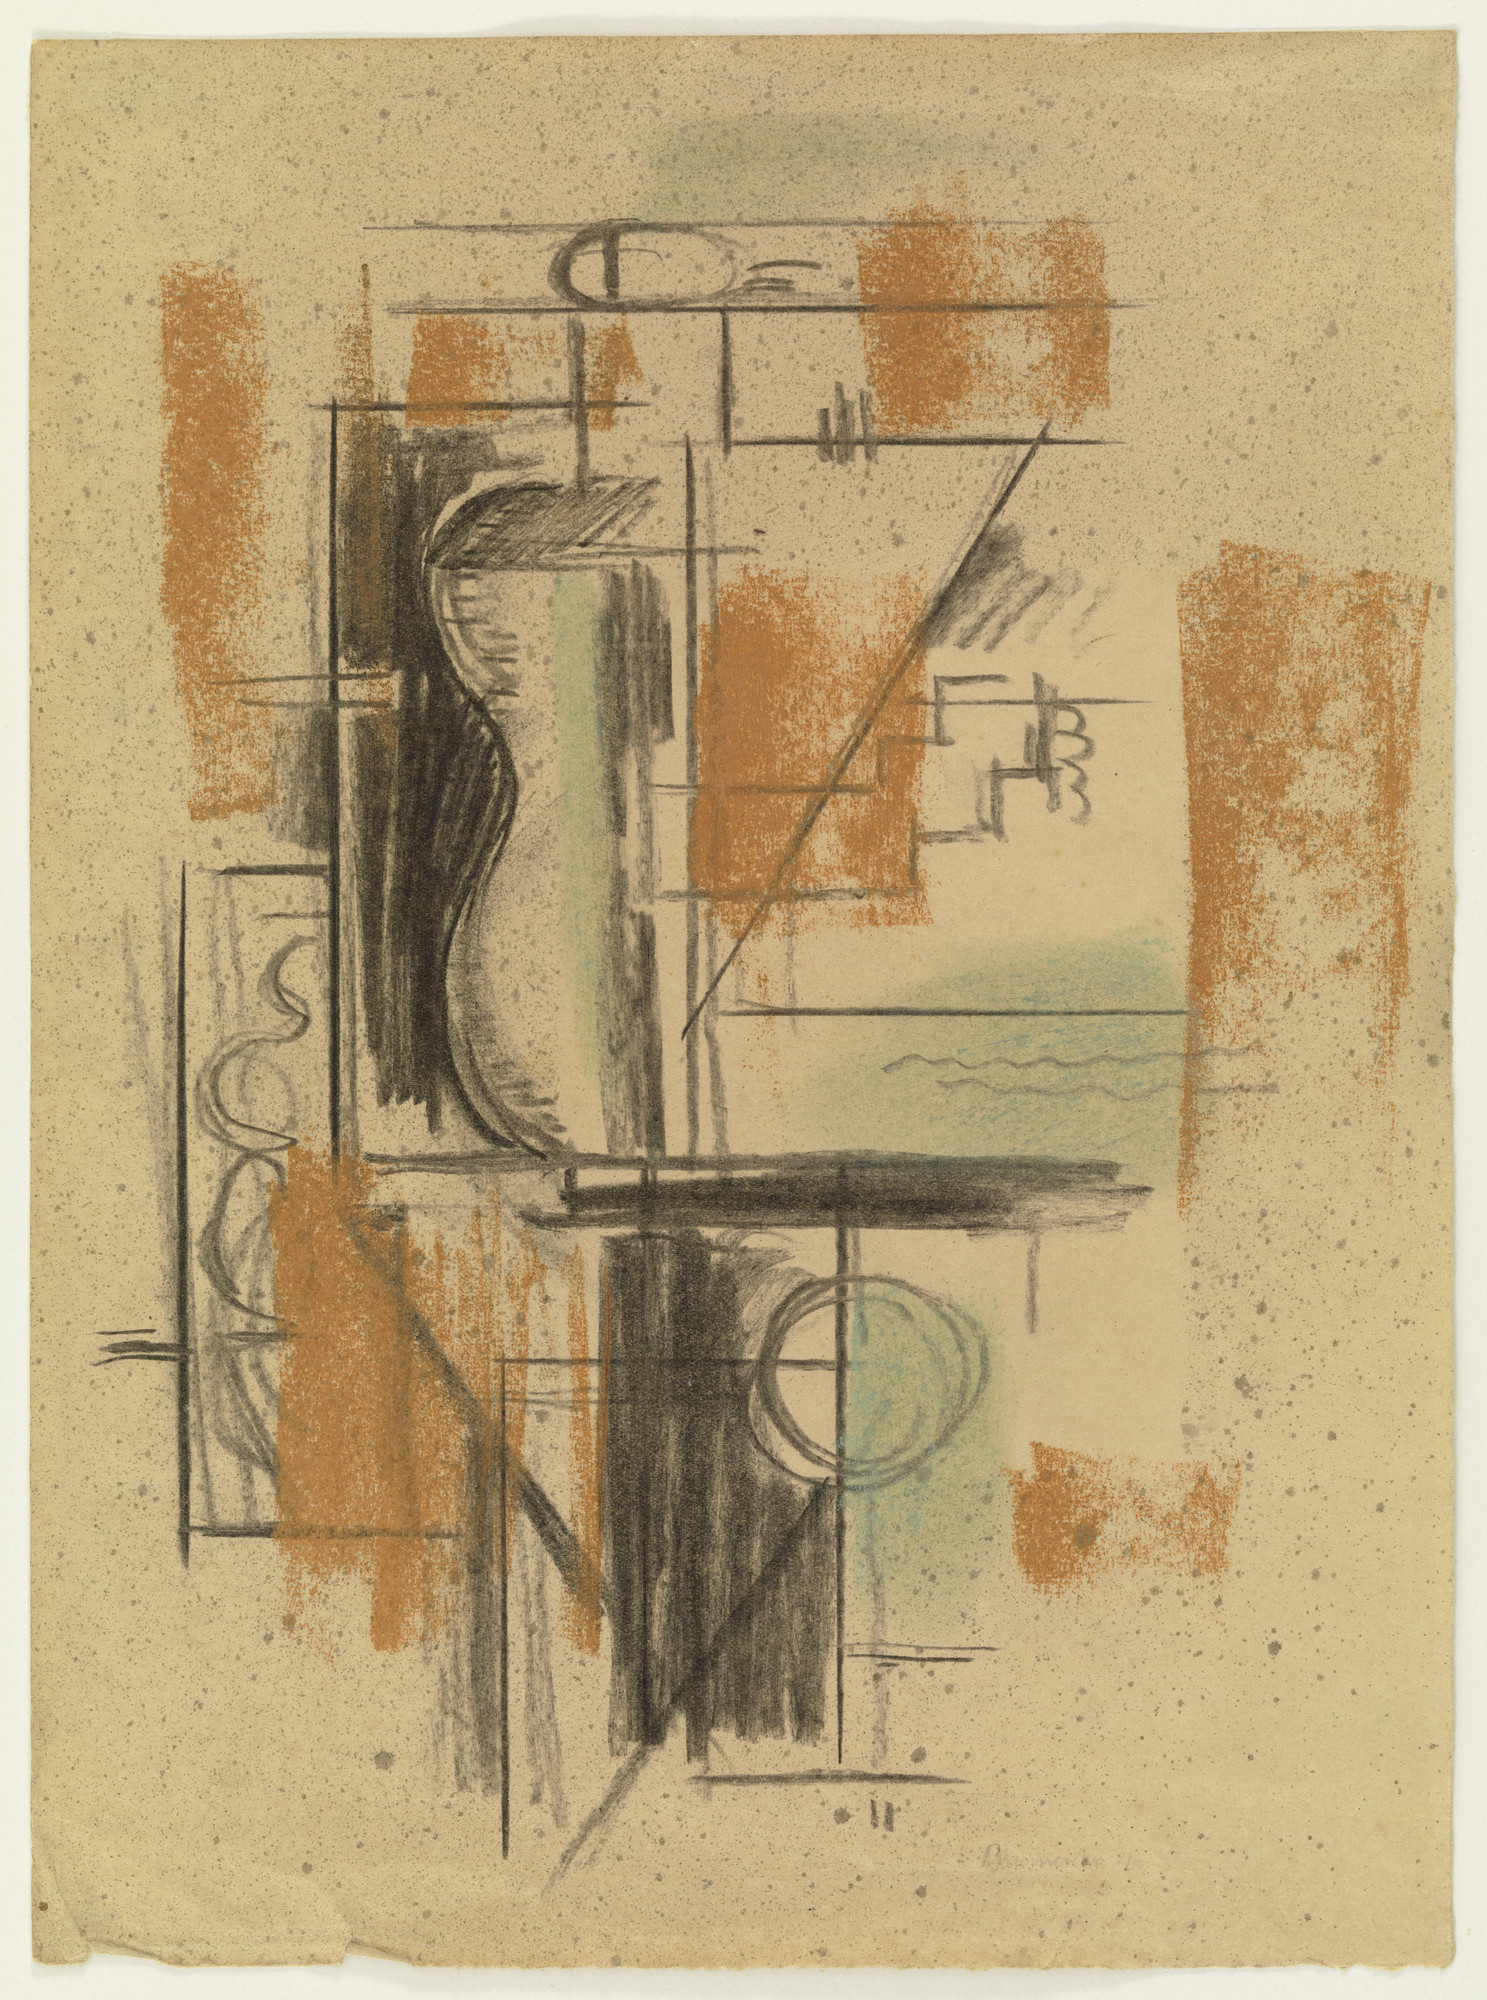 Willi Baumeister. Constructive Composition. 1921